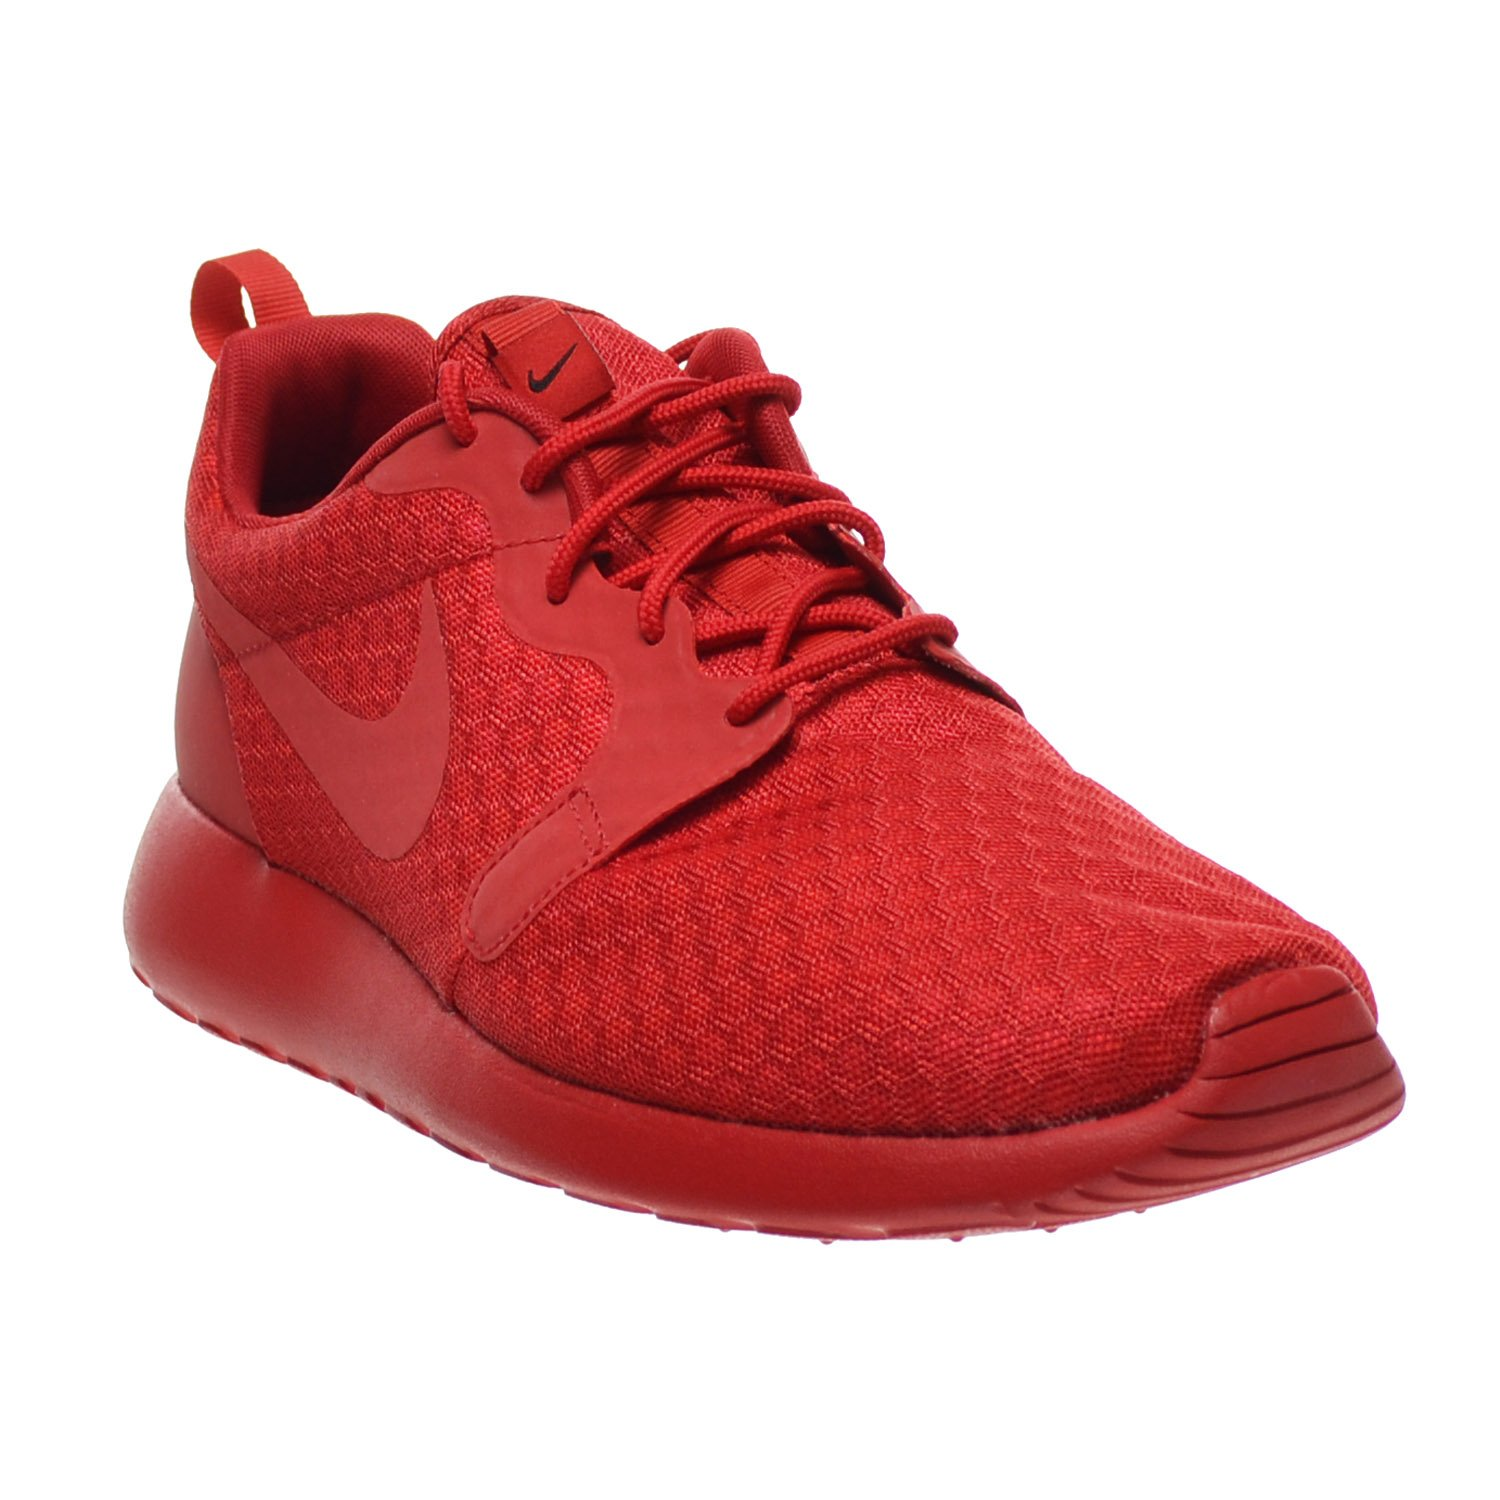 d74390cc79701 Nike Roshe One HYP Men s Shoes University Red Black 636220-660 (8. 5 D(M)  US)  Buy Online at Low Prices in India - Amazon.in